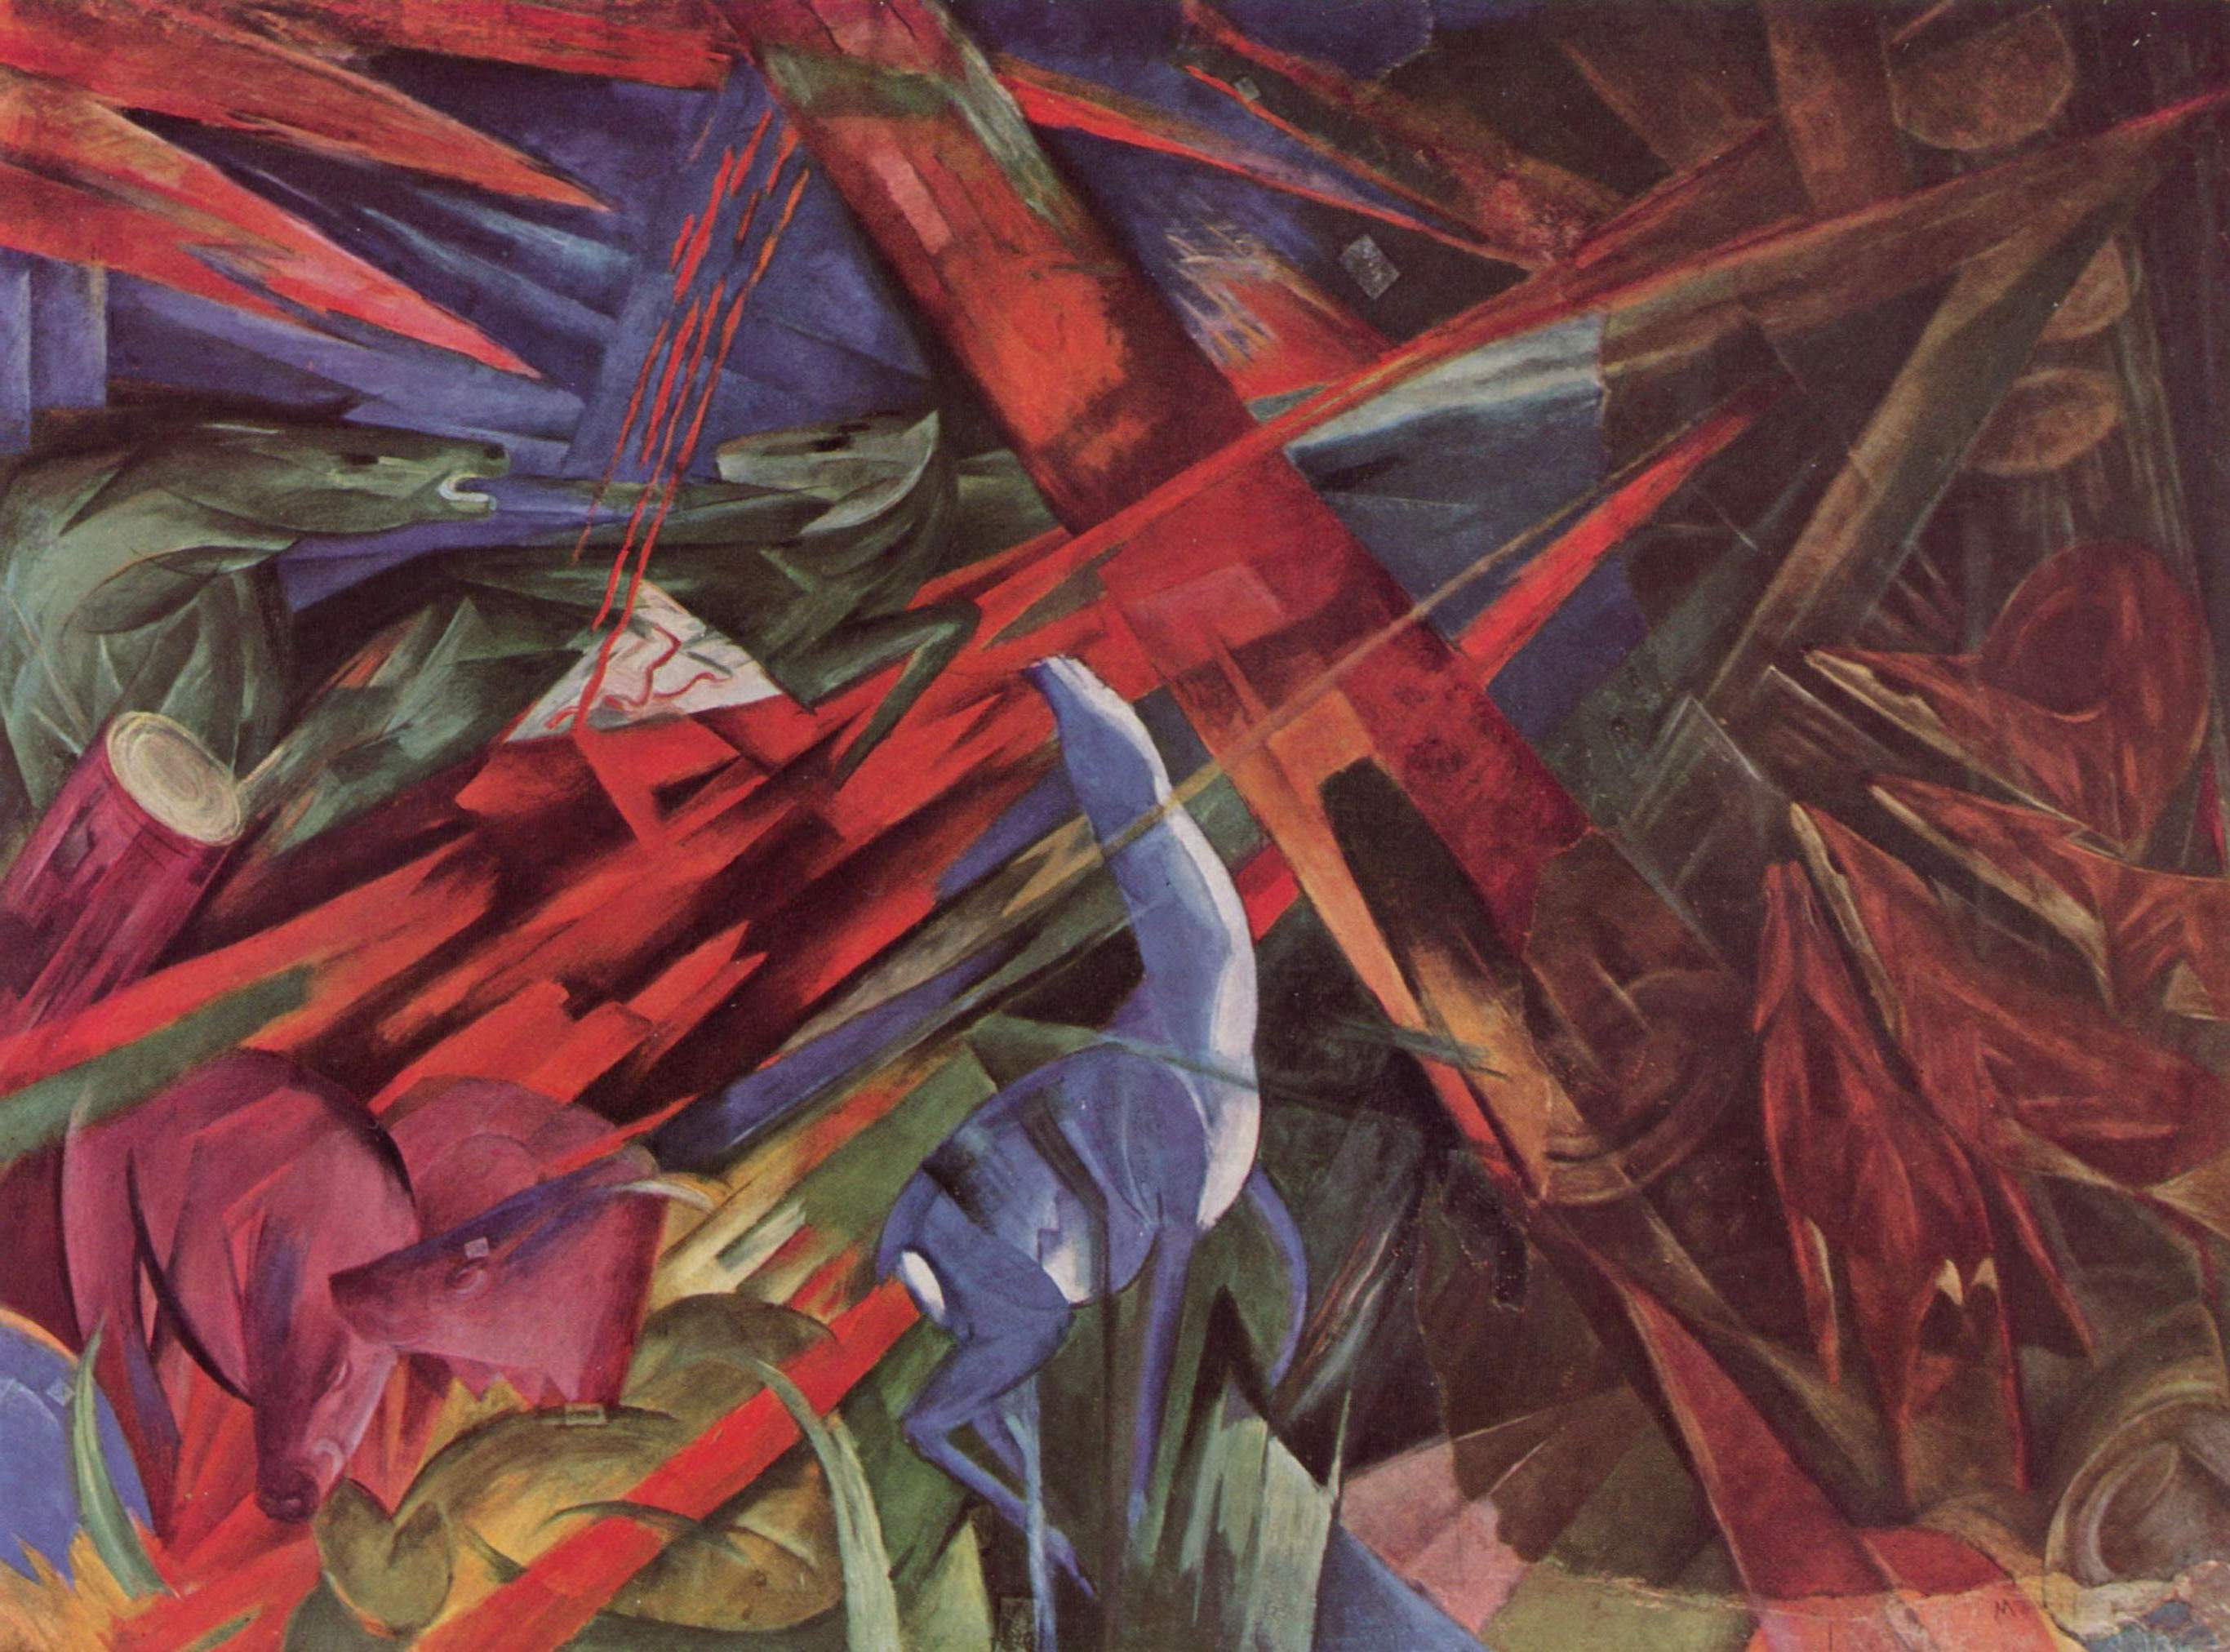 franz marc The fox, 1913 by franz marc massive range of art prints, posters & canvases quality uk framing & 100% money back guarantee.